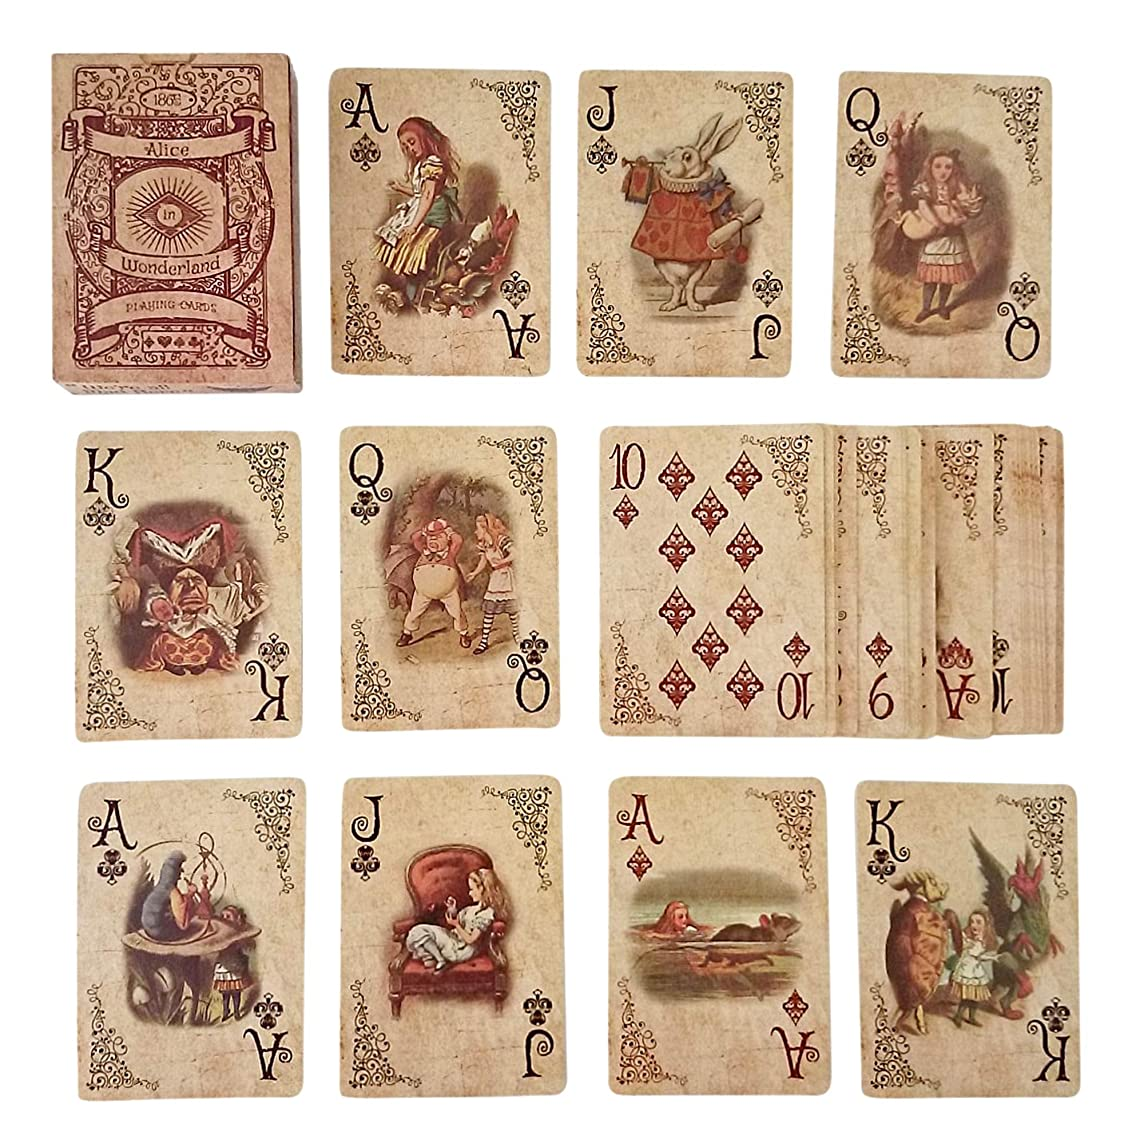 ASVP Shop Alice In Wonderland Playing Cards - Full Set is Ideal for Themed Parties, Props, Theme, and Games